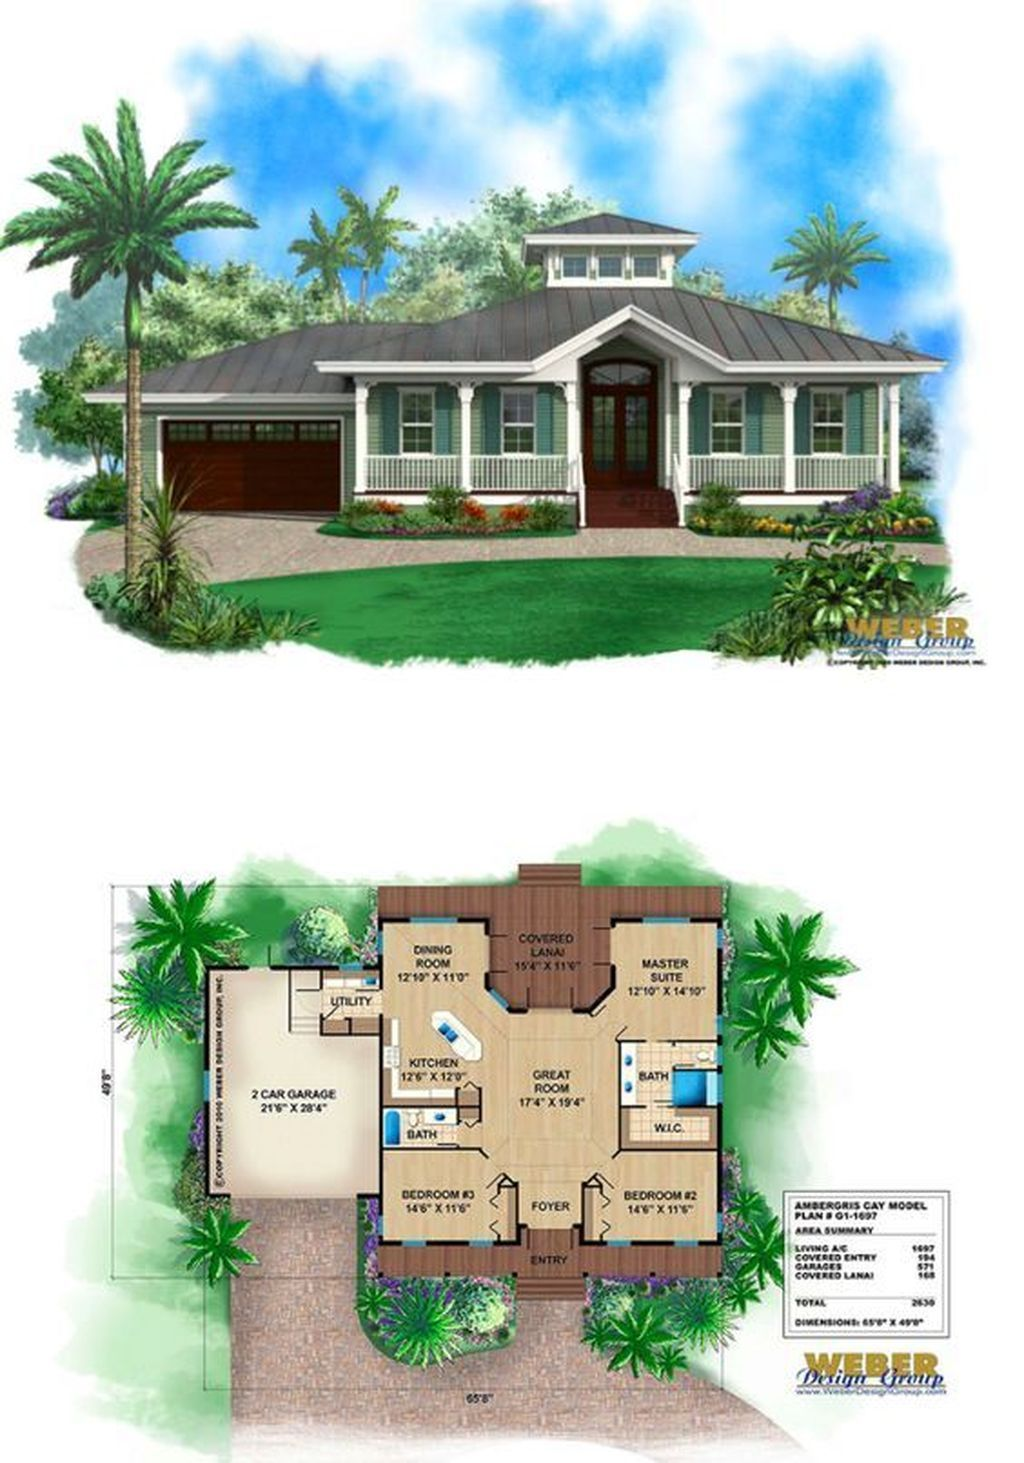 Awesome Small Cottage House Plans Ideas 10 Florida House Plans Small Cottage House Plans Beach House Plan